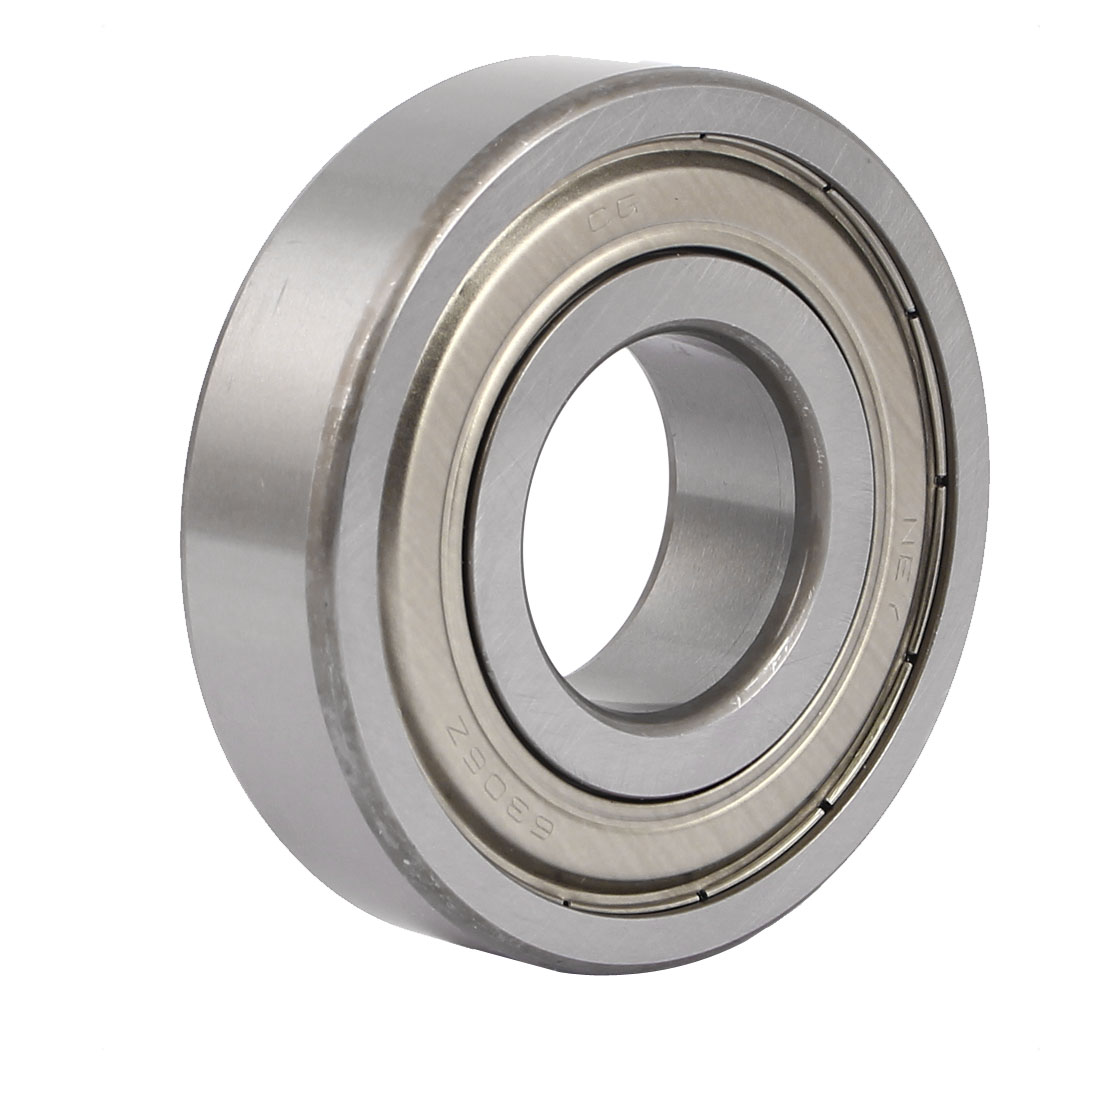 ZZ6307 Double Shielded Deep Groove Ball Bearing 80mmx35mmx22mm